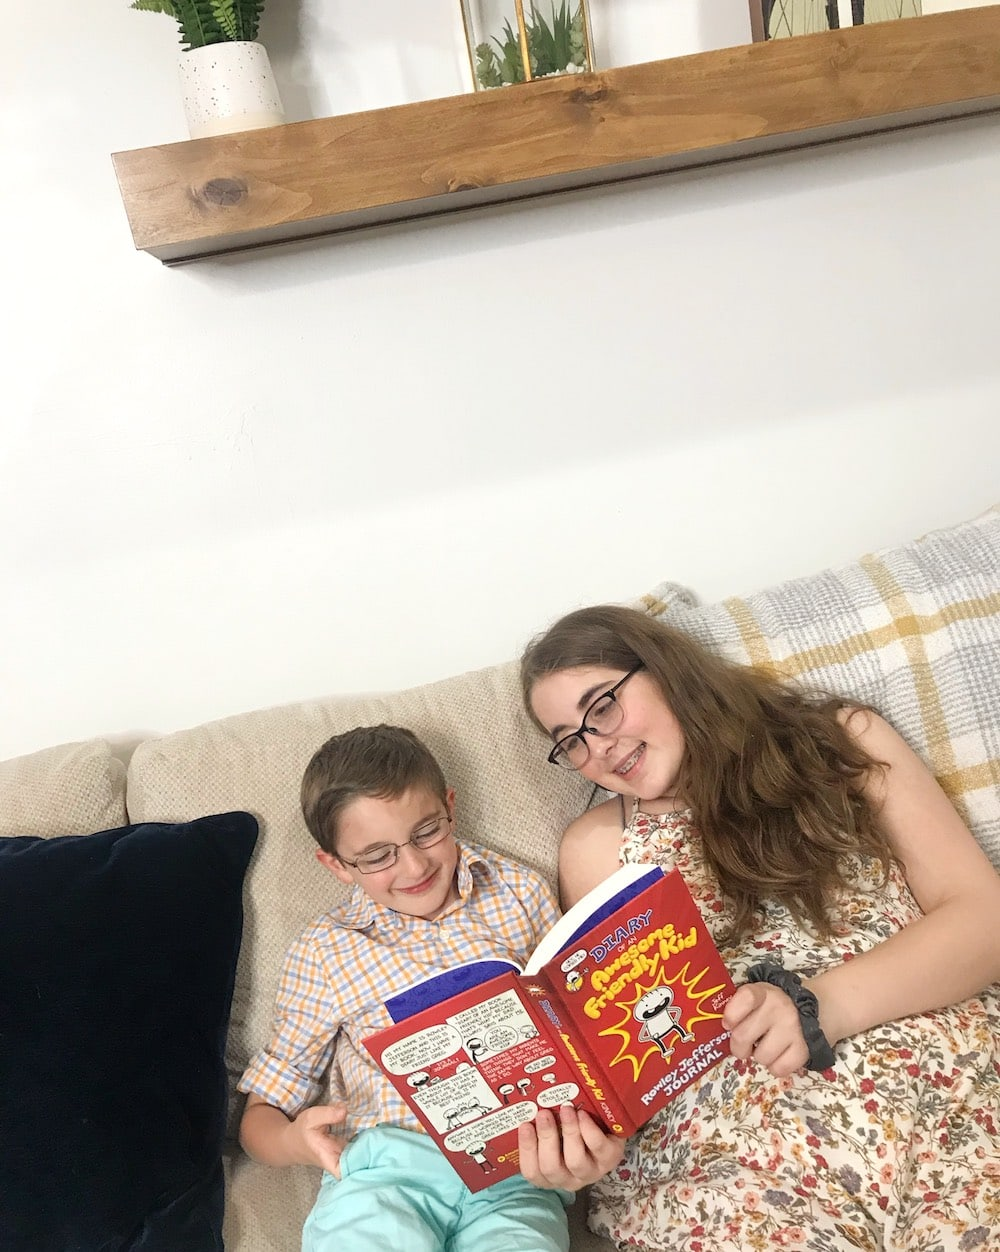 brother and sister reading Diary of an Awesome Friendly Kid on couch